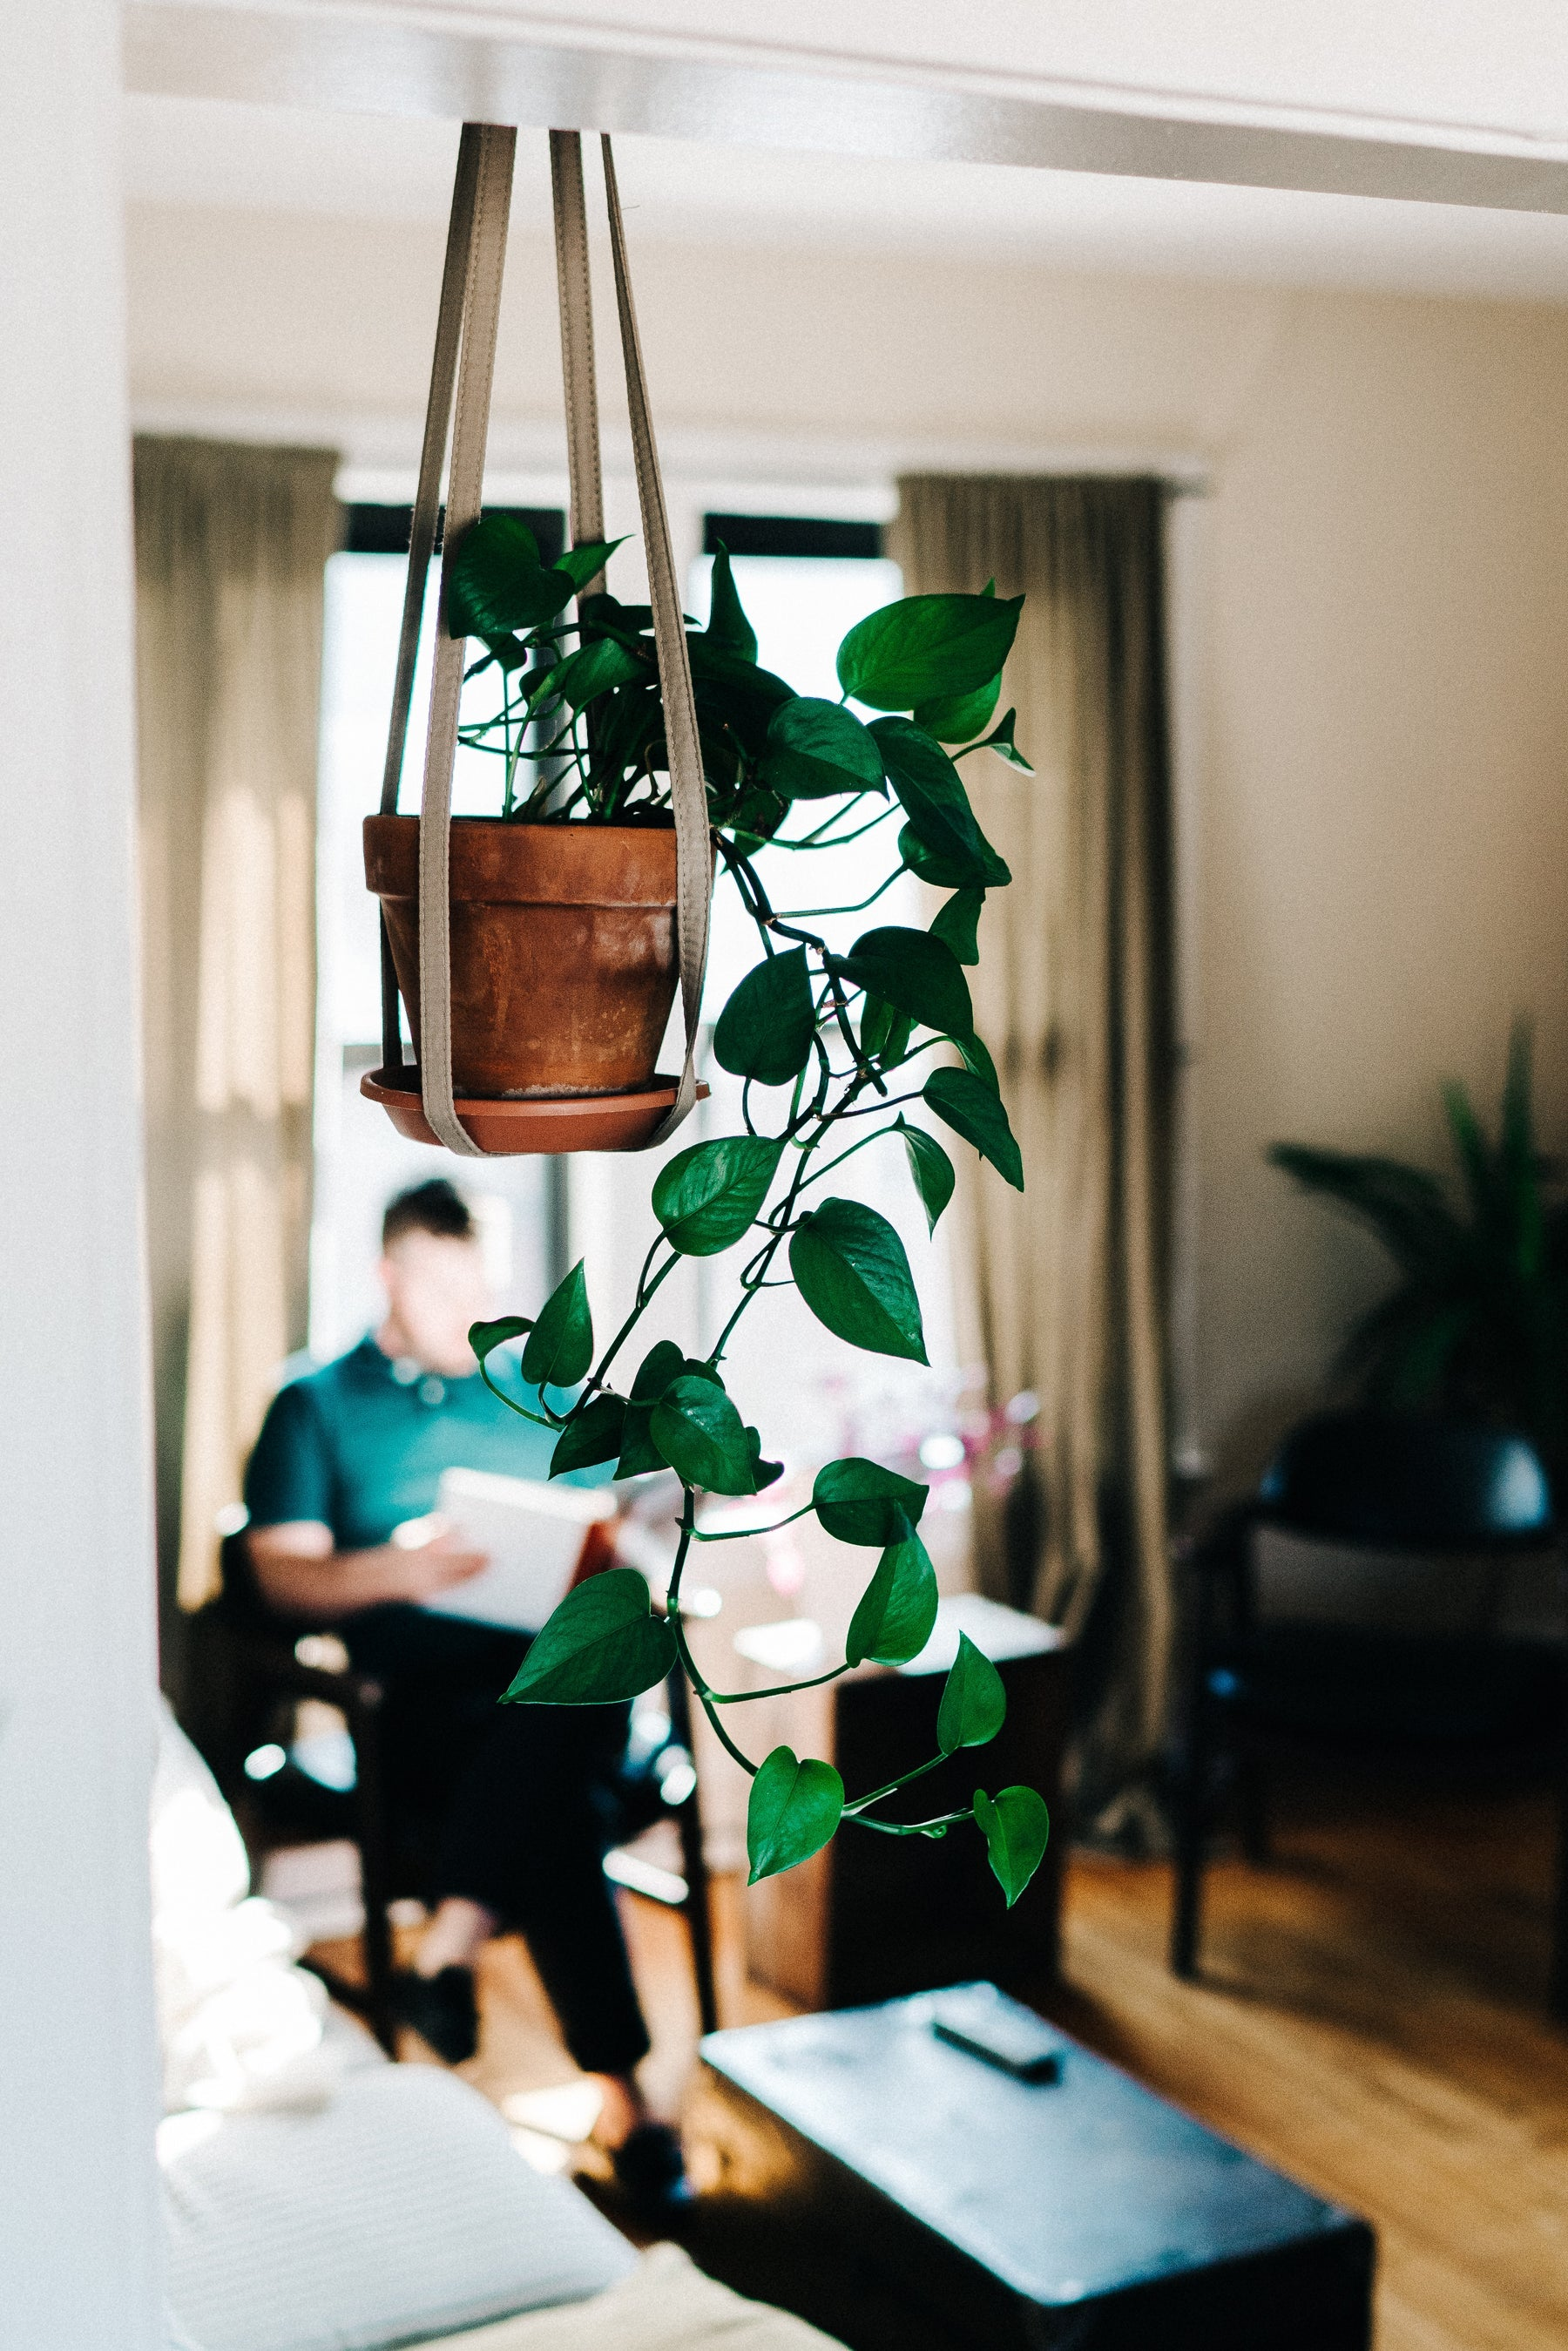 Did you know Indoor Houseplants are healthy for you?